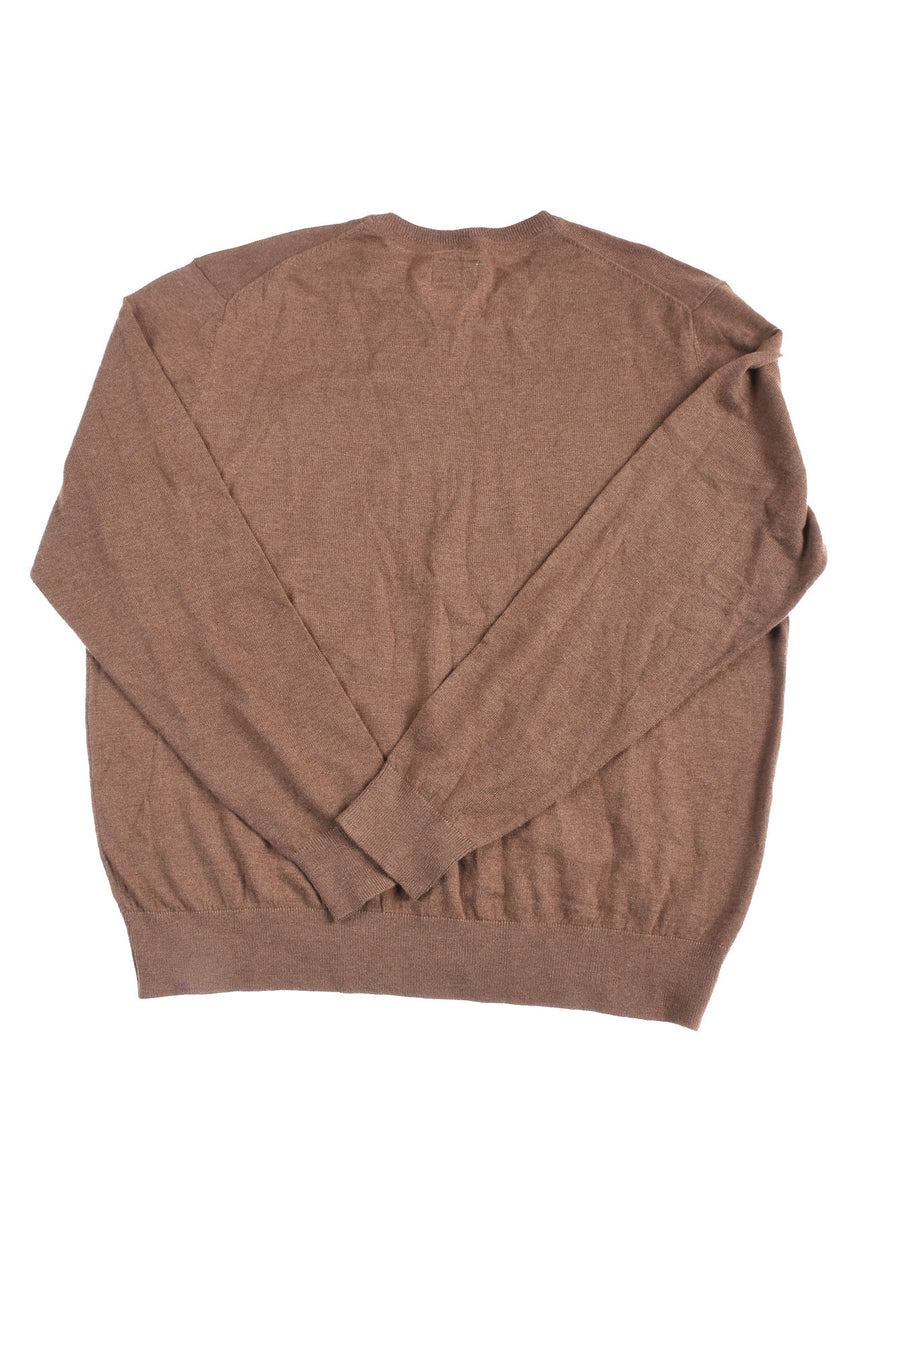 NEW St. John's Bay Men's Sweater X-Large Brown